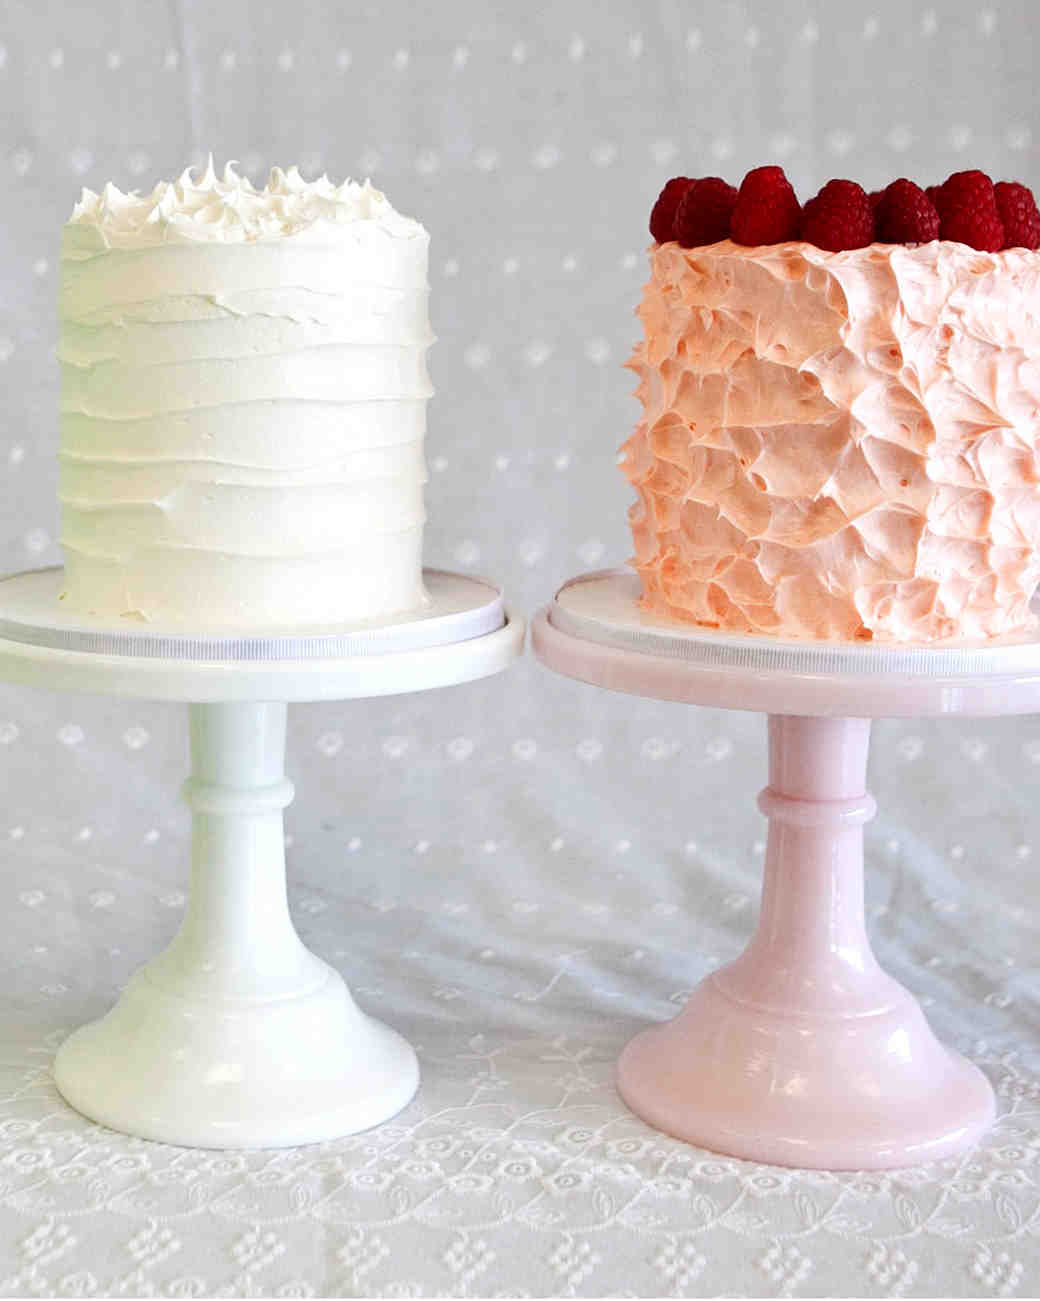 soft icing recipe for wedding cake a sweet guide to choosing a frosting for your wedding cake 20277